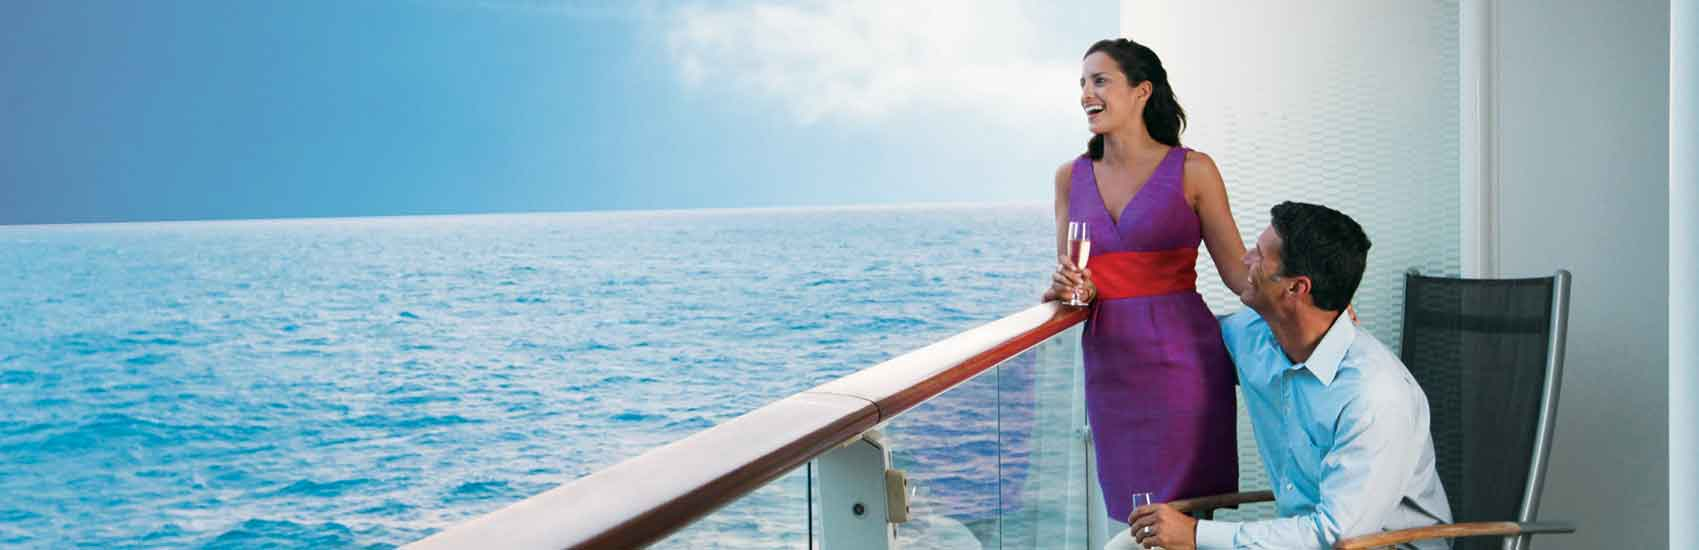 Exclusive Virtuoso Offer with Celebrity Cruises 2